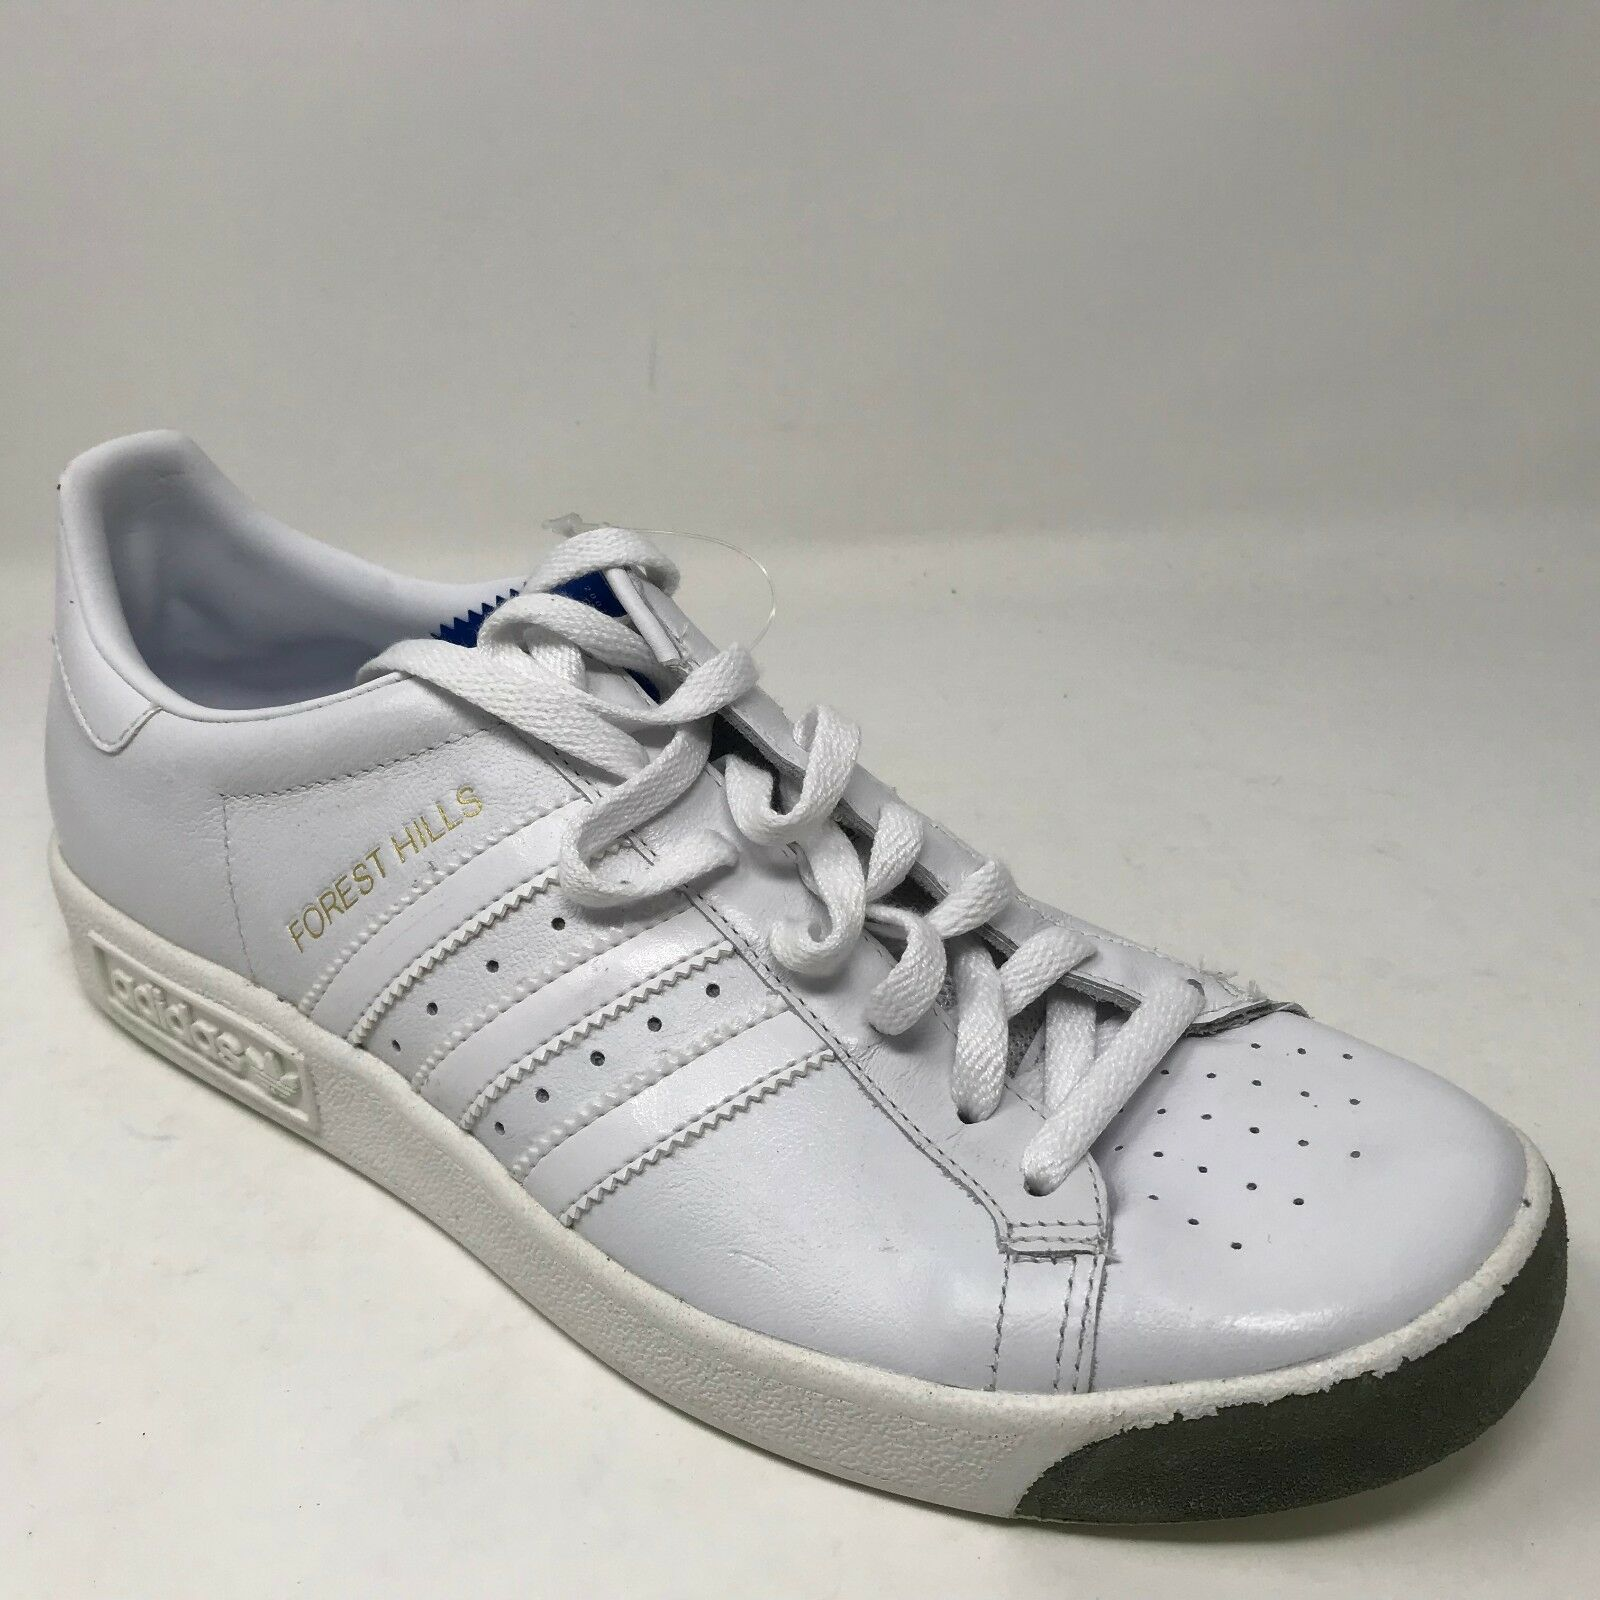 0f5551bc071f86 new vintage hommes adidas forest forest forest hills 116481 taille 13,5  (magasin) | Bonne Conception Qualité e6aaec